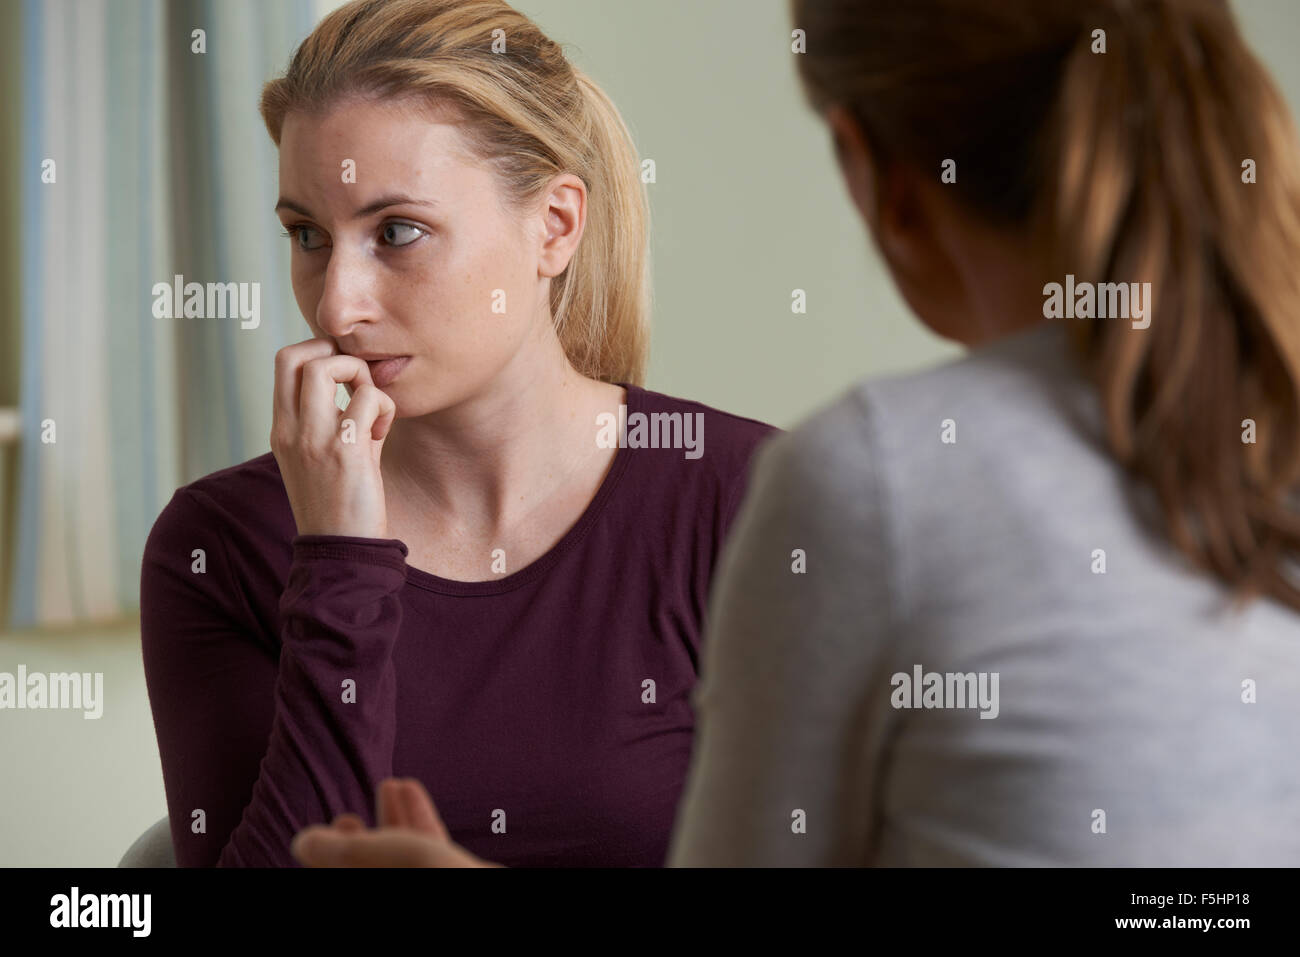 Young Woman Discussing Problems With Counselor - Stock Image